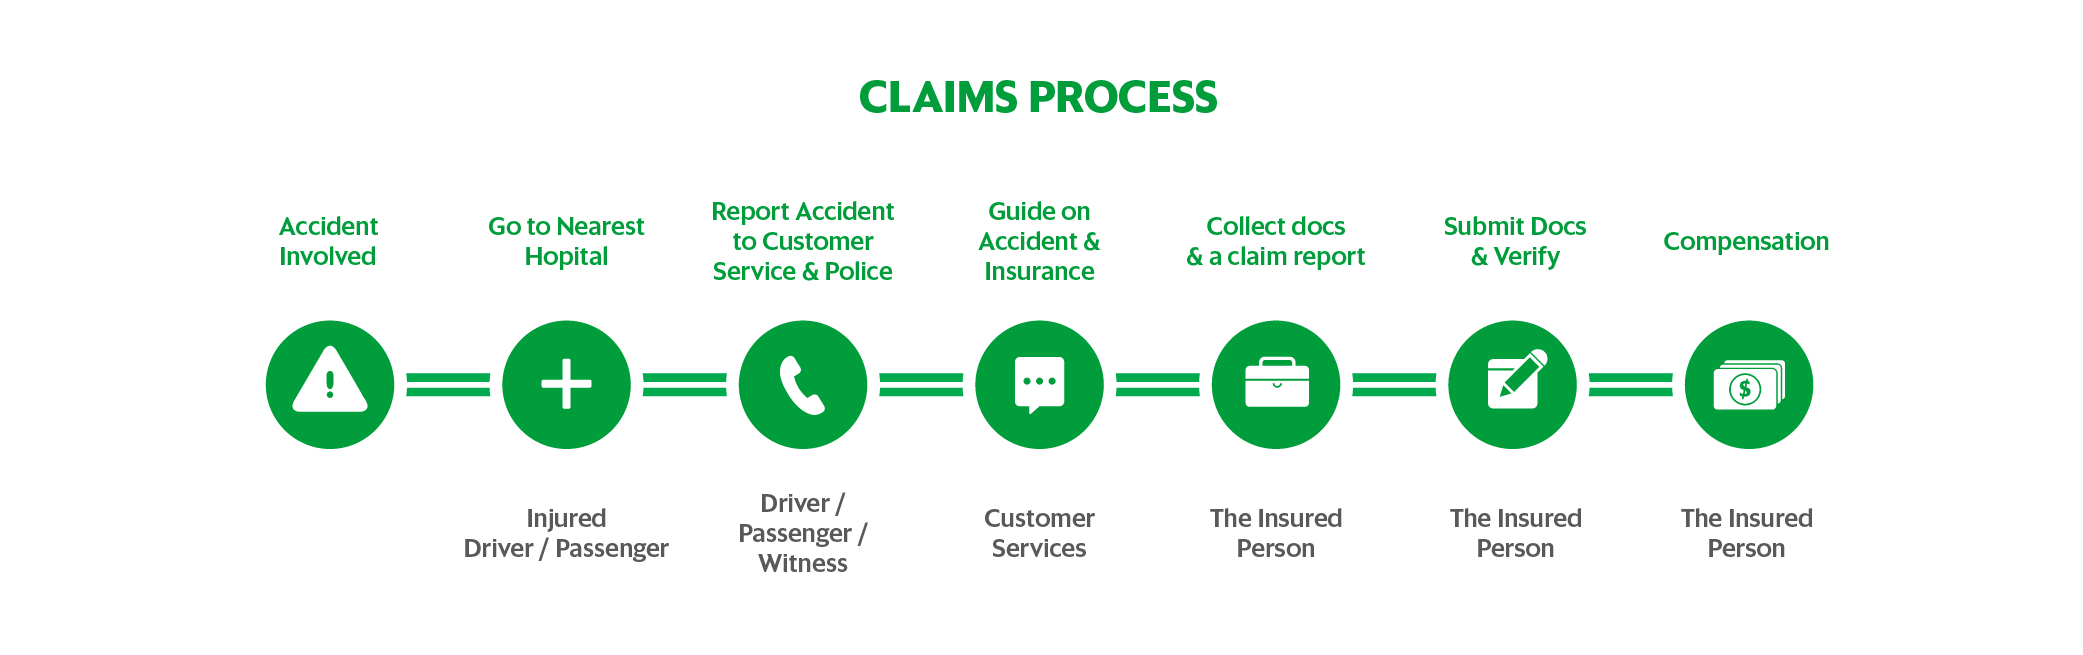 Grab's Personal Accident Insurance